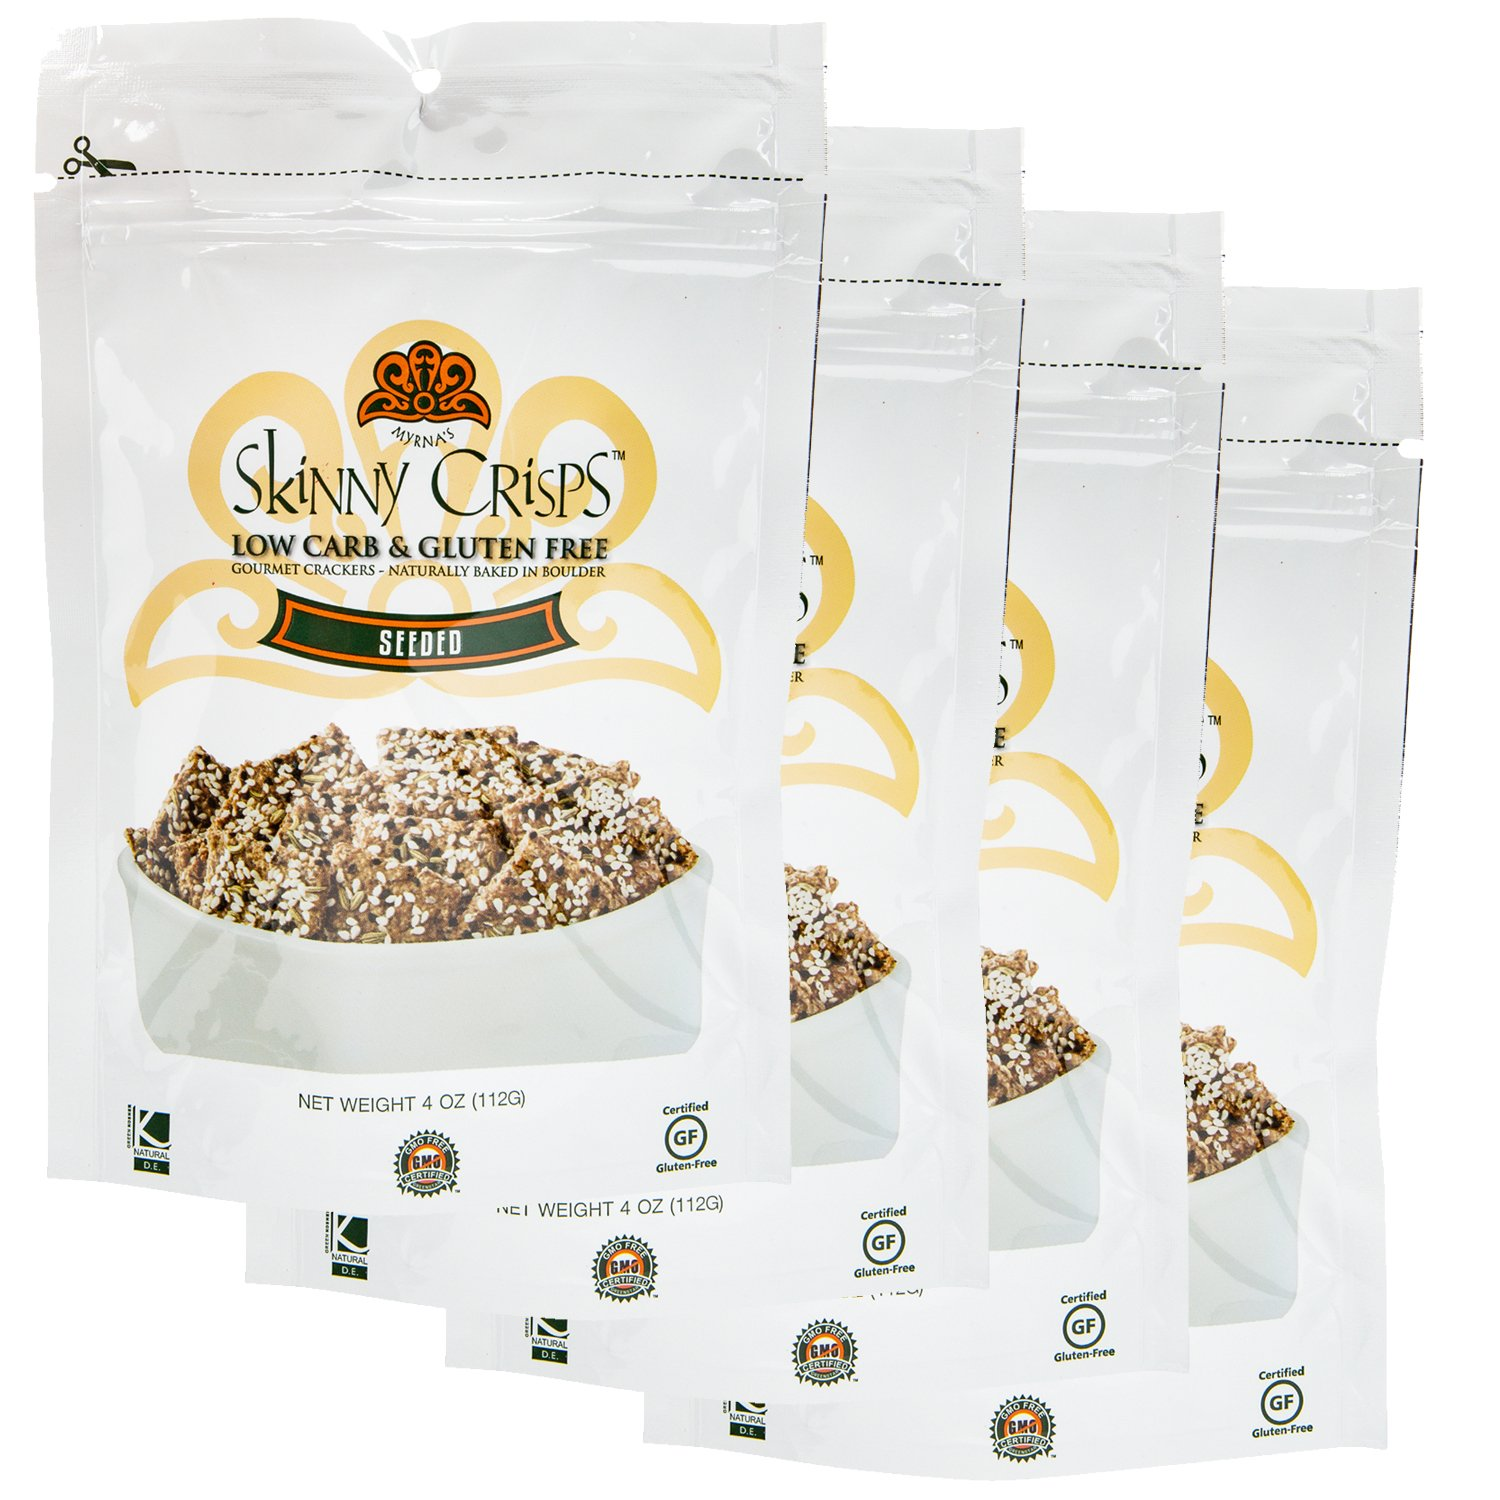 Seeded Crackers Value Pack: Low Carb, Gluten Free, Vegan, Kosher, Keto Freindly Crackers 4 Oz Bag (Pack of 4) by Skinny Crisps (Image #9)